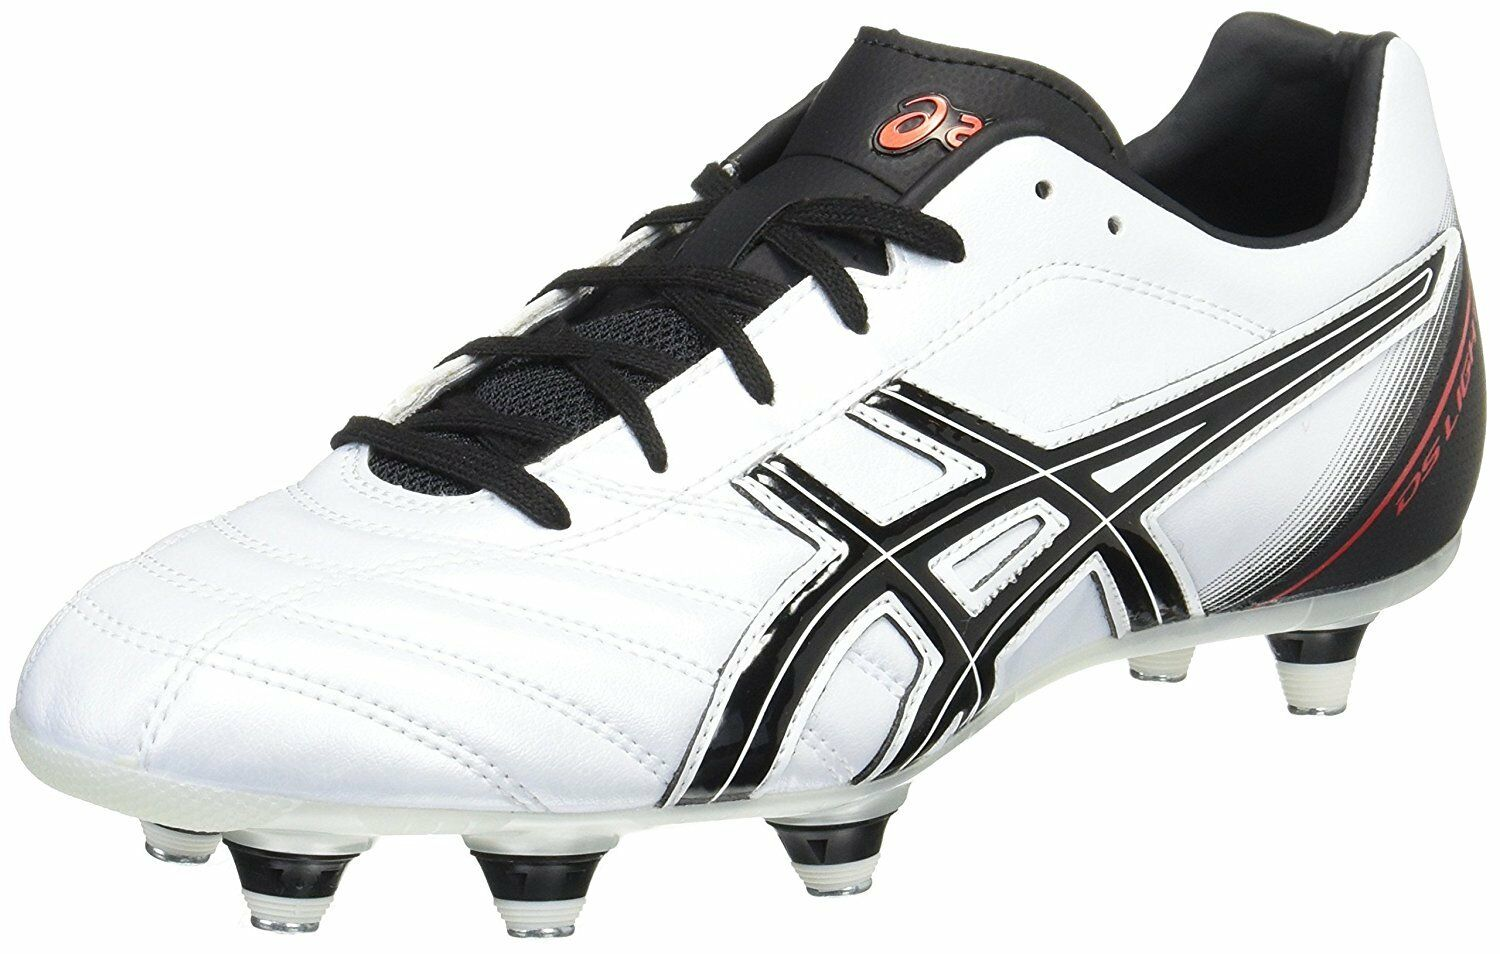 ASICS Soccer Footbtutti Spike sautope DS LIGHT WD 2 SI bianca Onyx US624.5cm